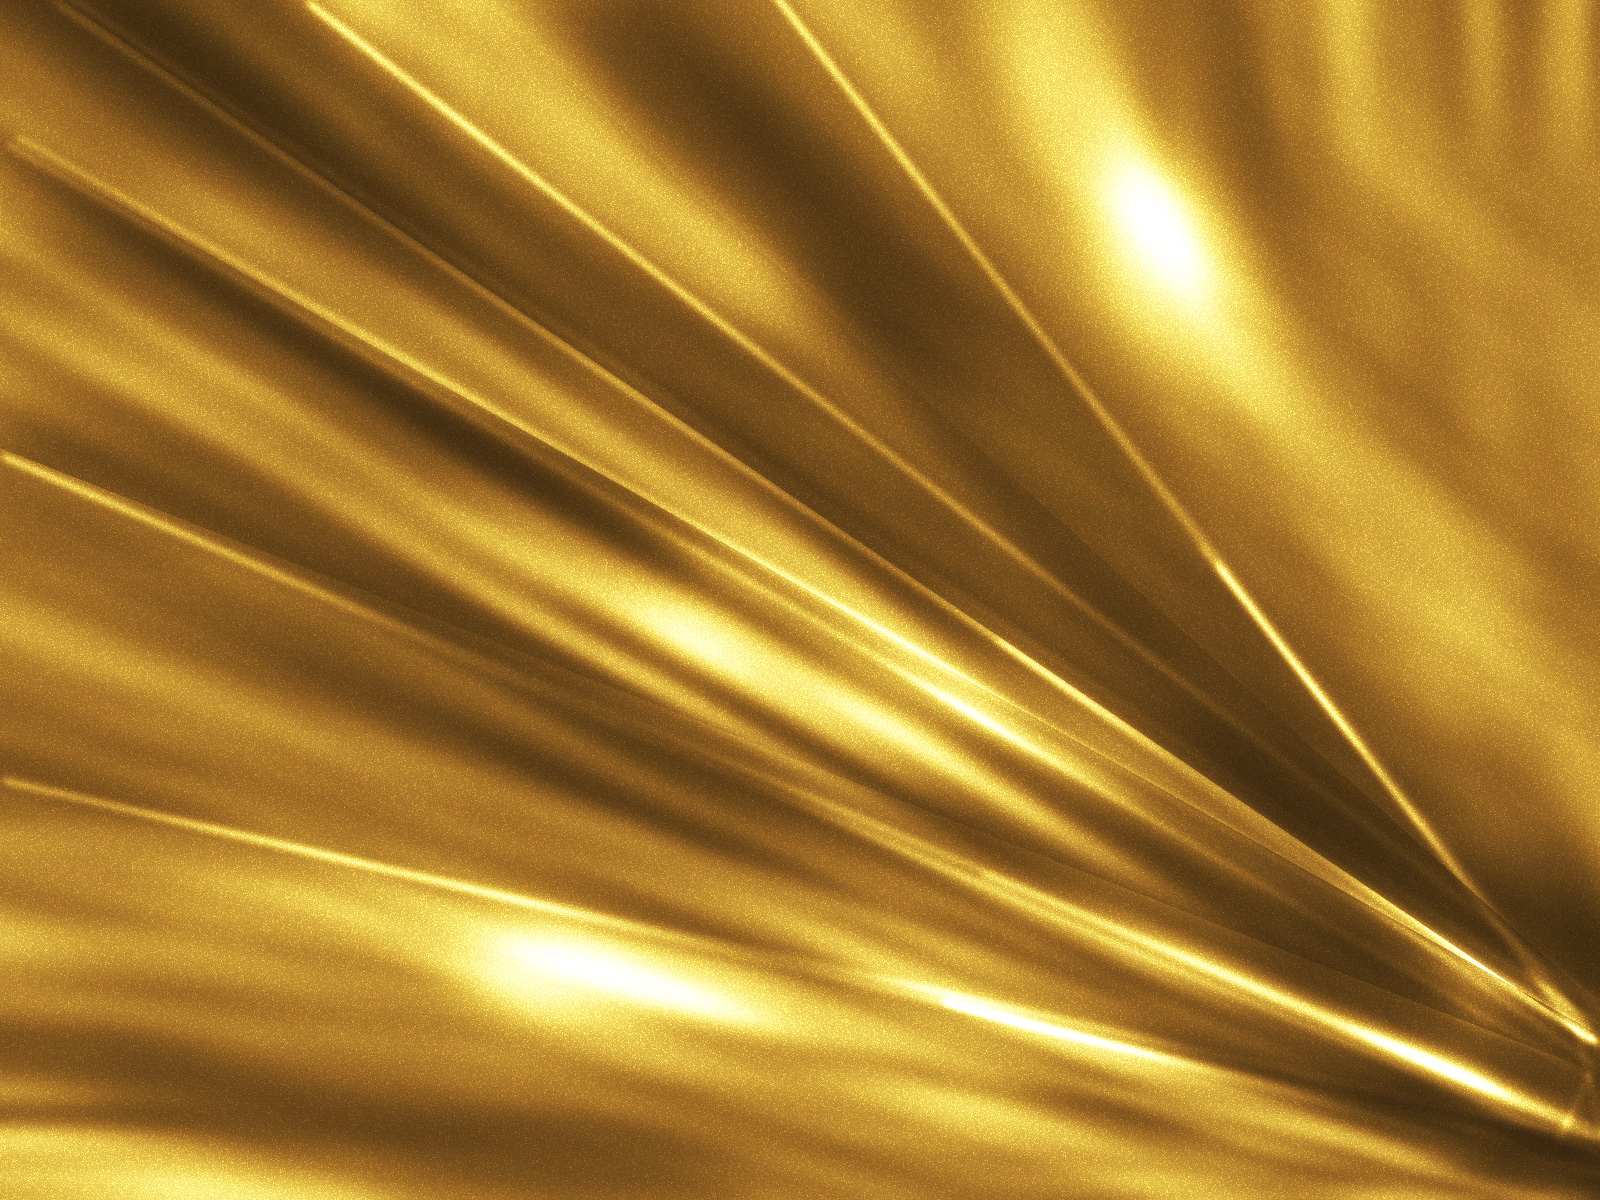 Background Gold Background Kindle Pics 1600x1200